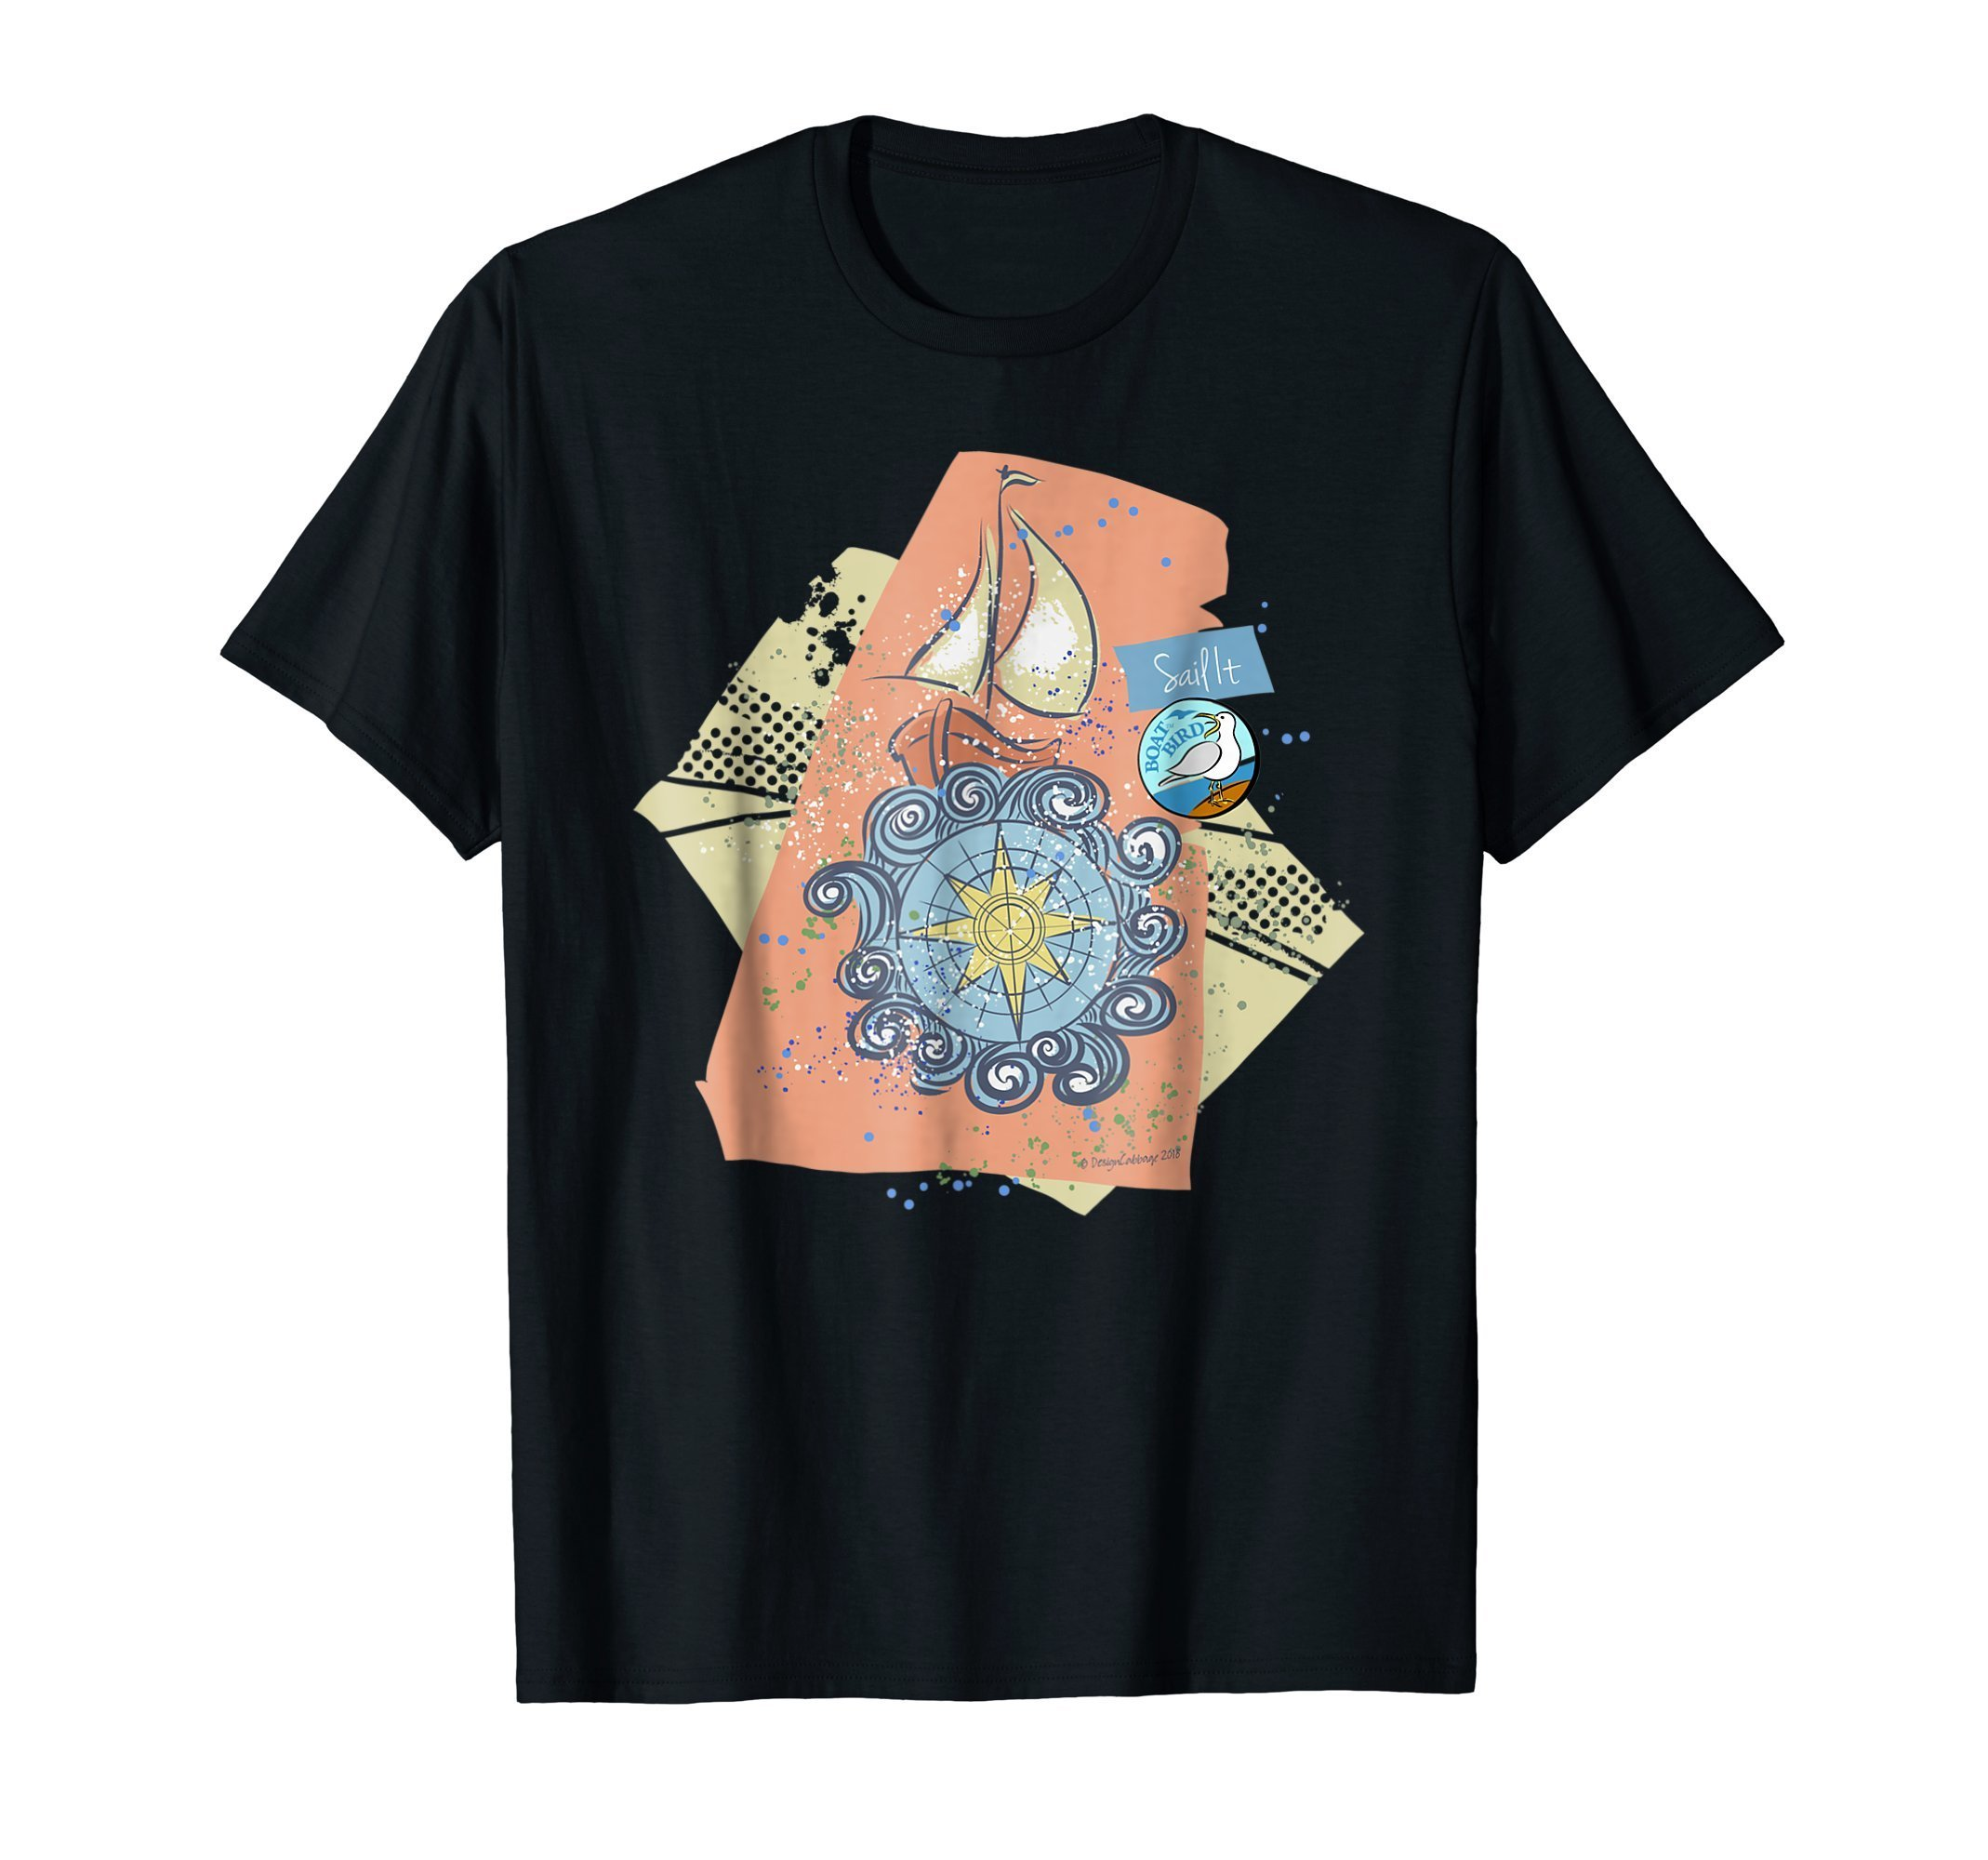 Boat Travel Cruise Graphic T Shirt